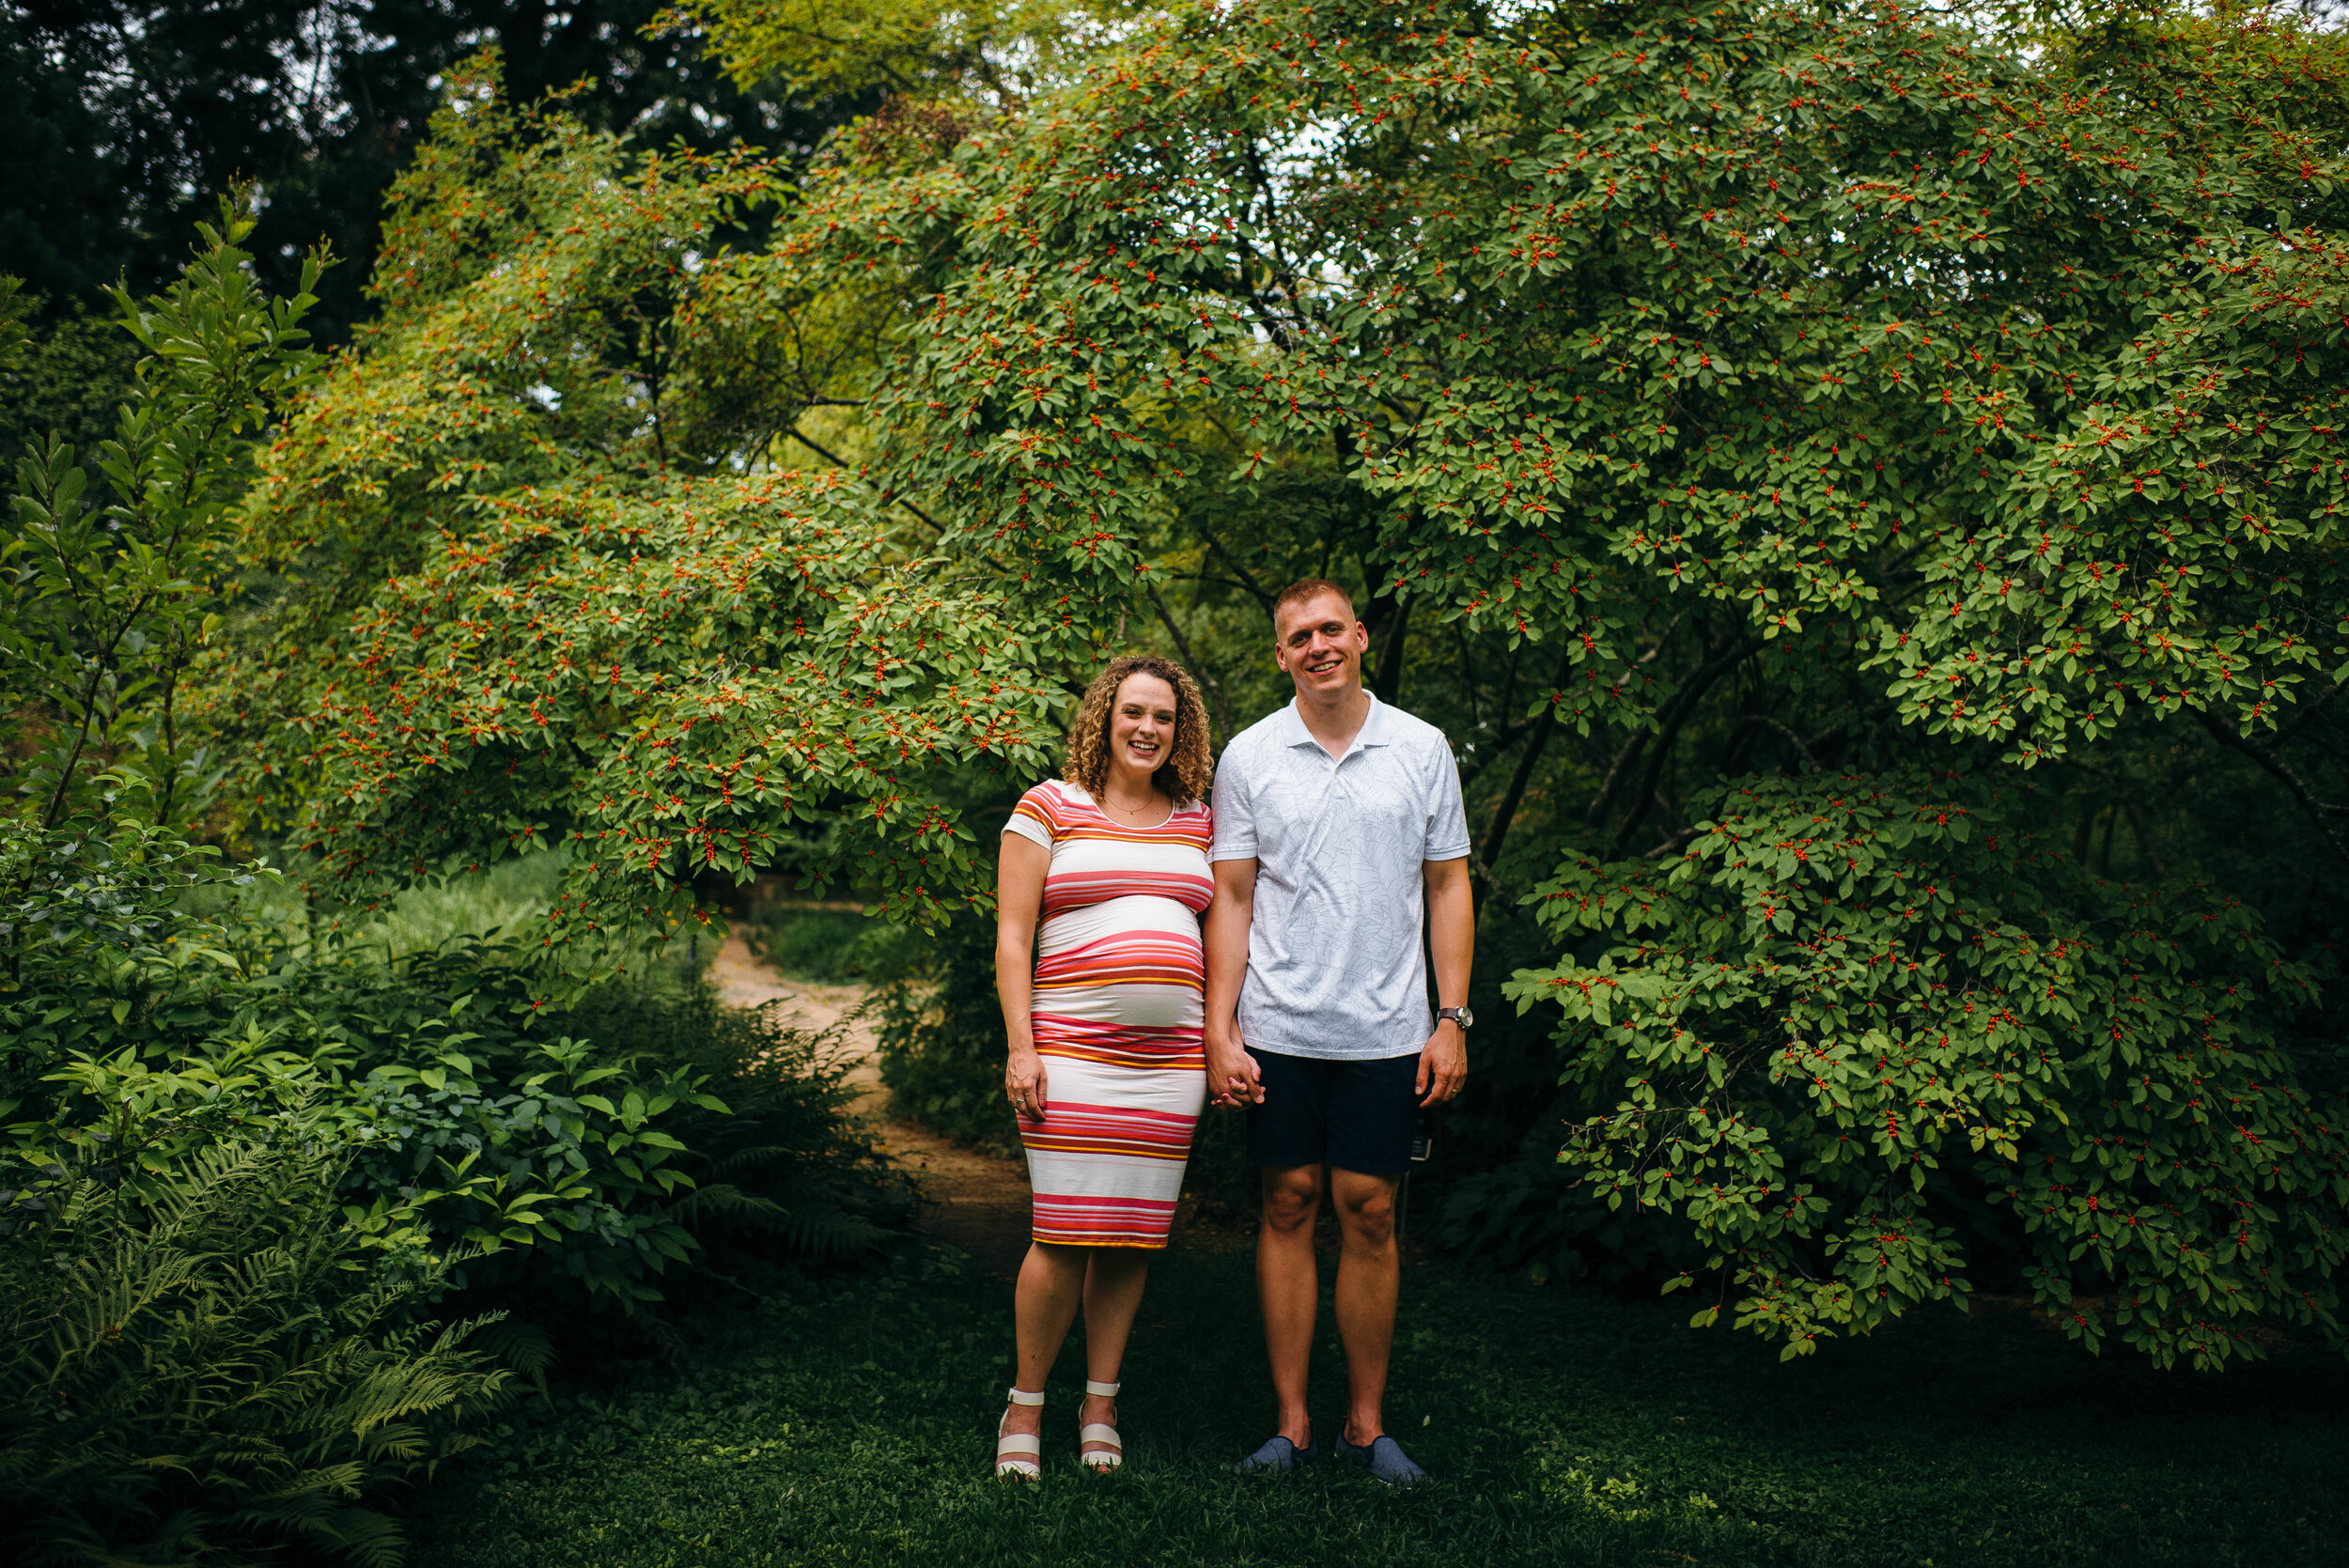 coker arboretum maternity photos - chapel hill maternity photos - north carolina maternity photographer -